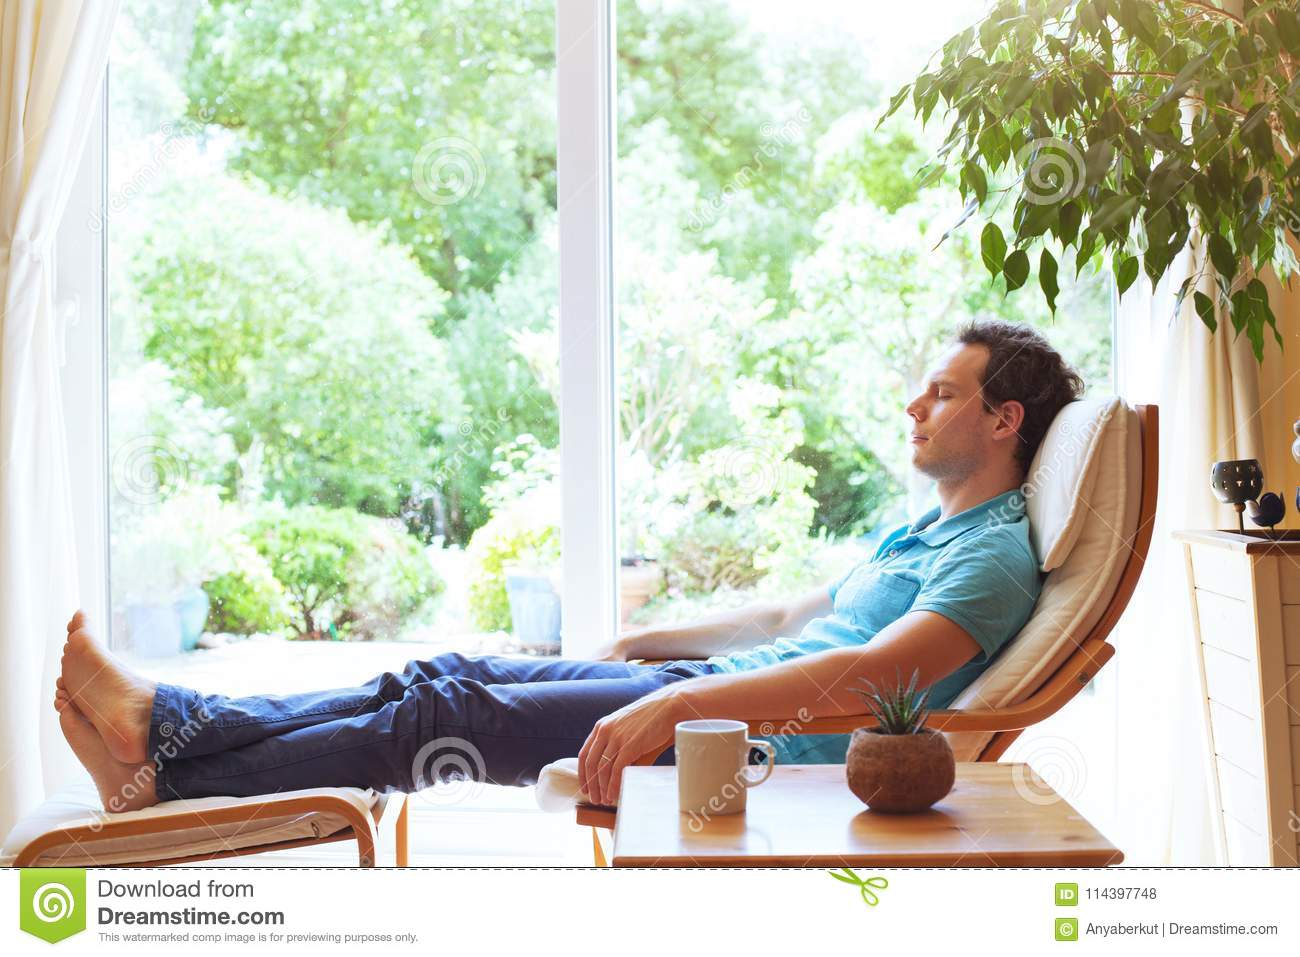 Man relaxing in deck chair at home, relaxation